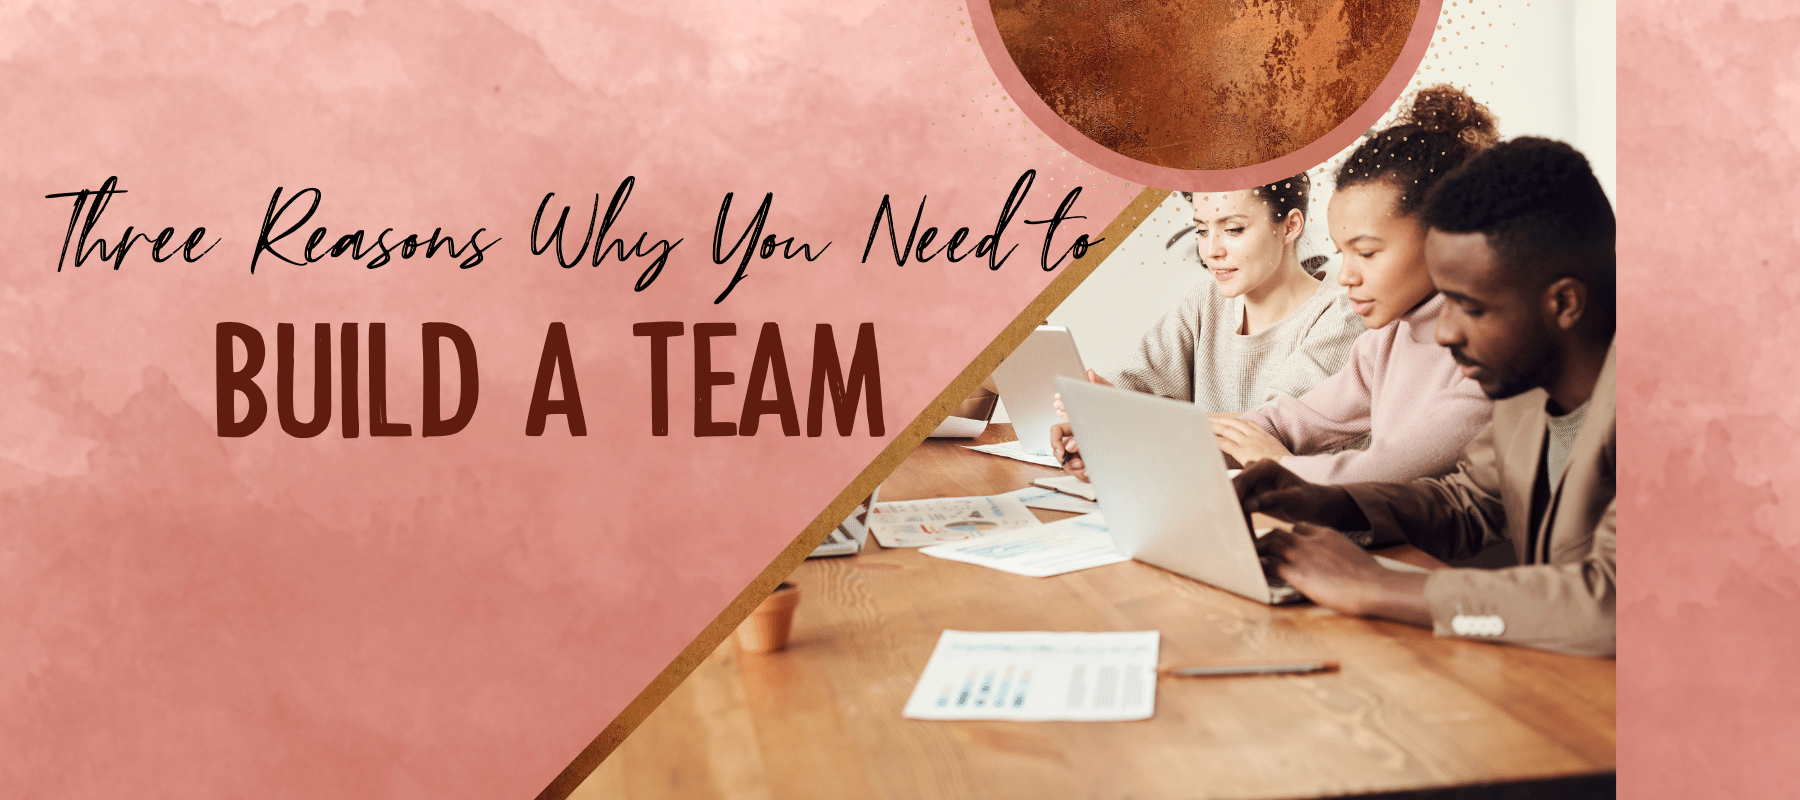 Three Reasons Why You Need To Build a Team